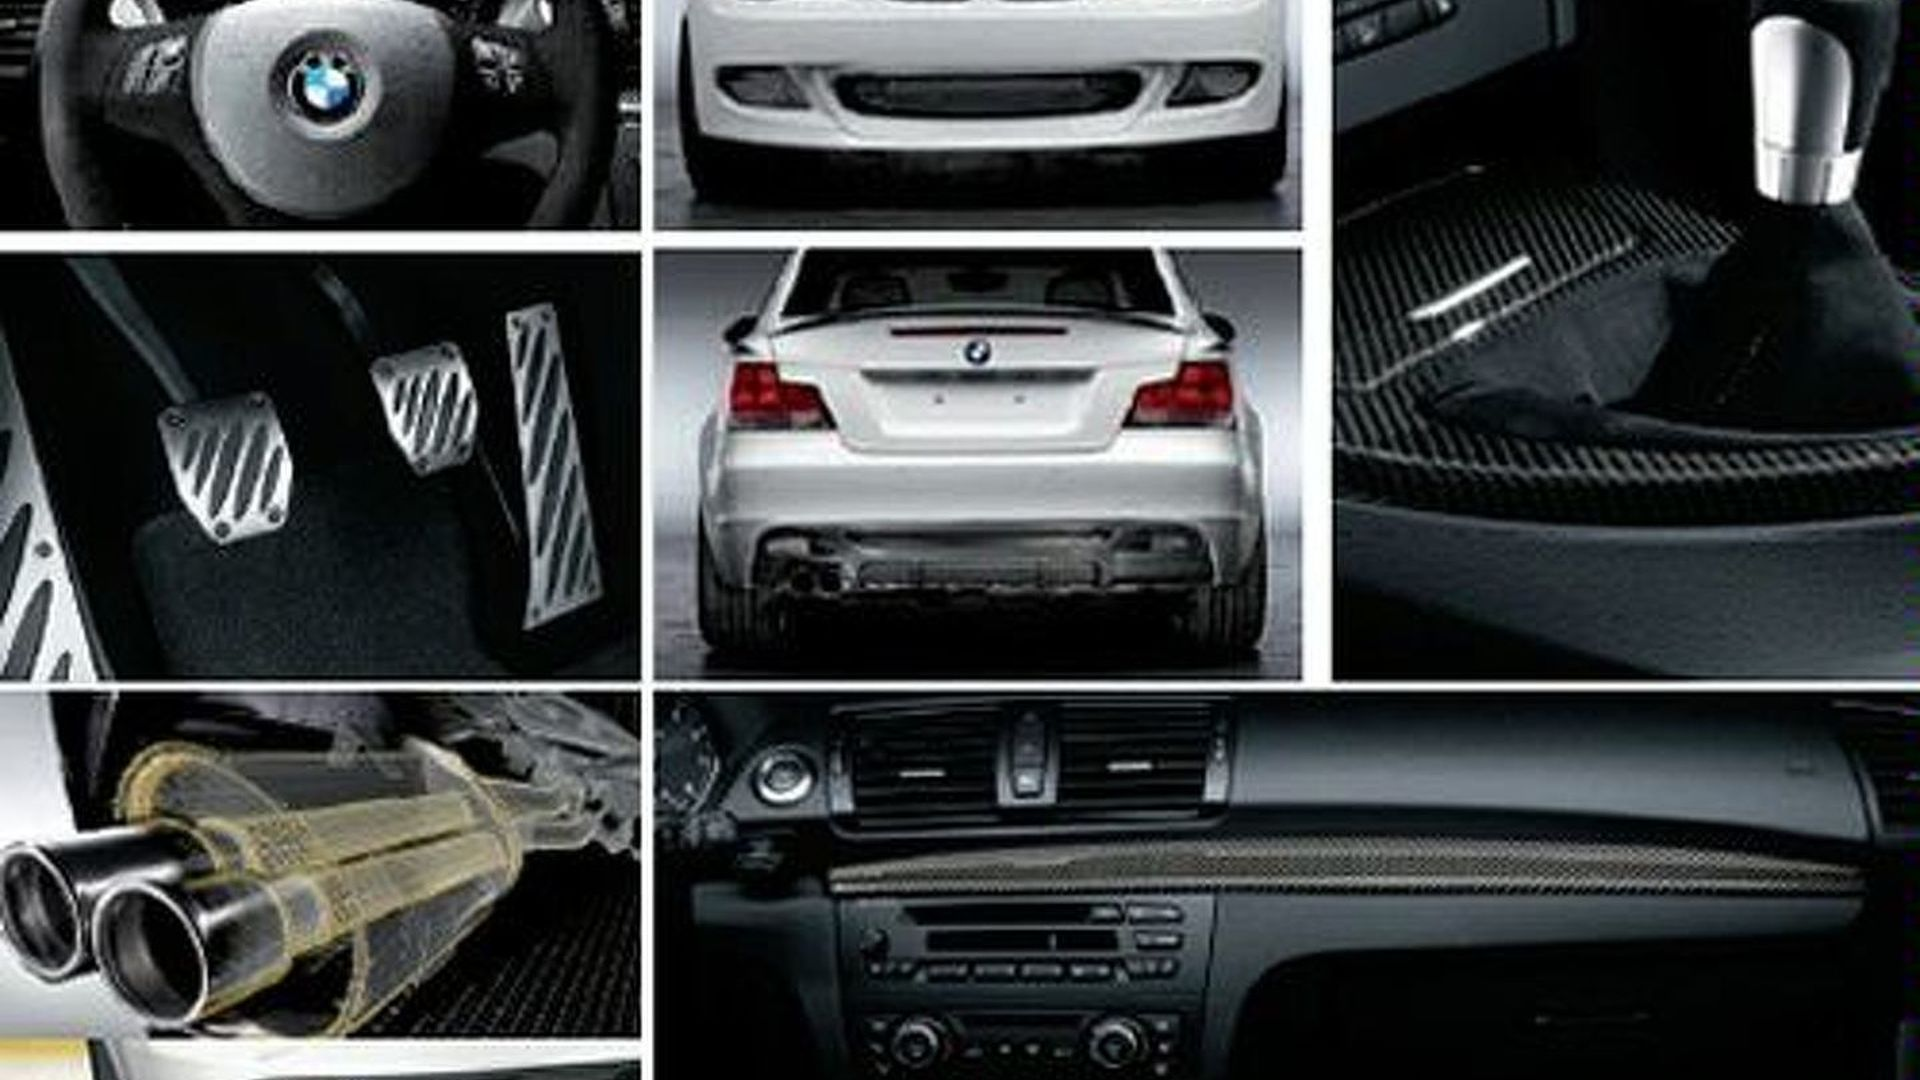 Bmw 1 Series Coupe Performance Parts Catalogue Leaked